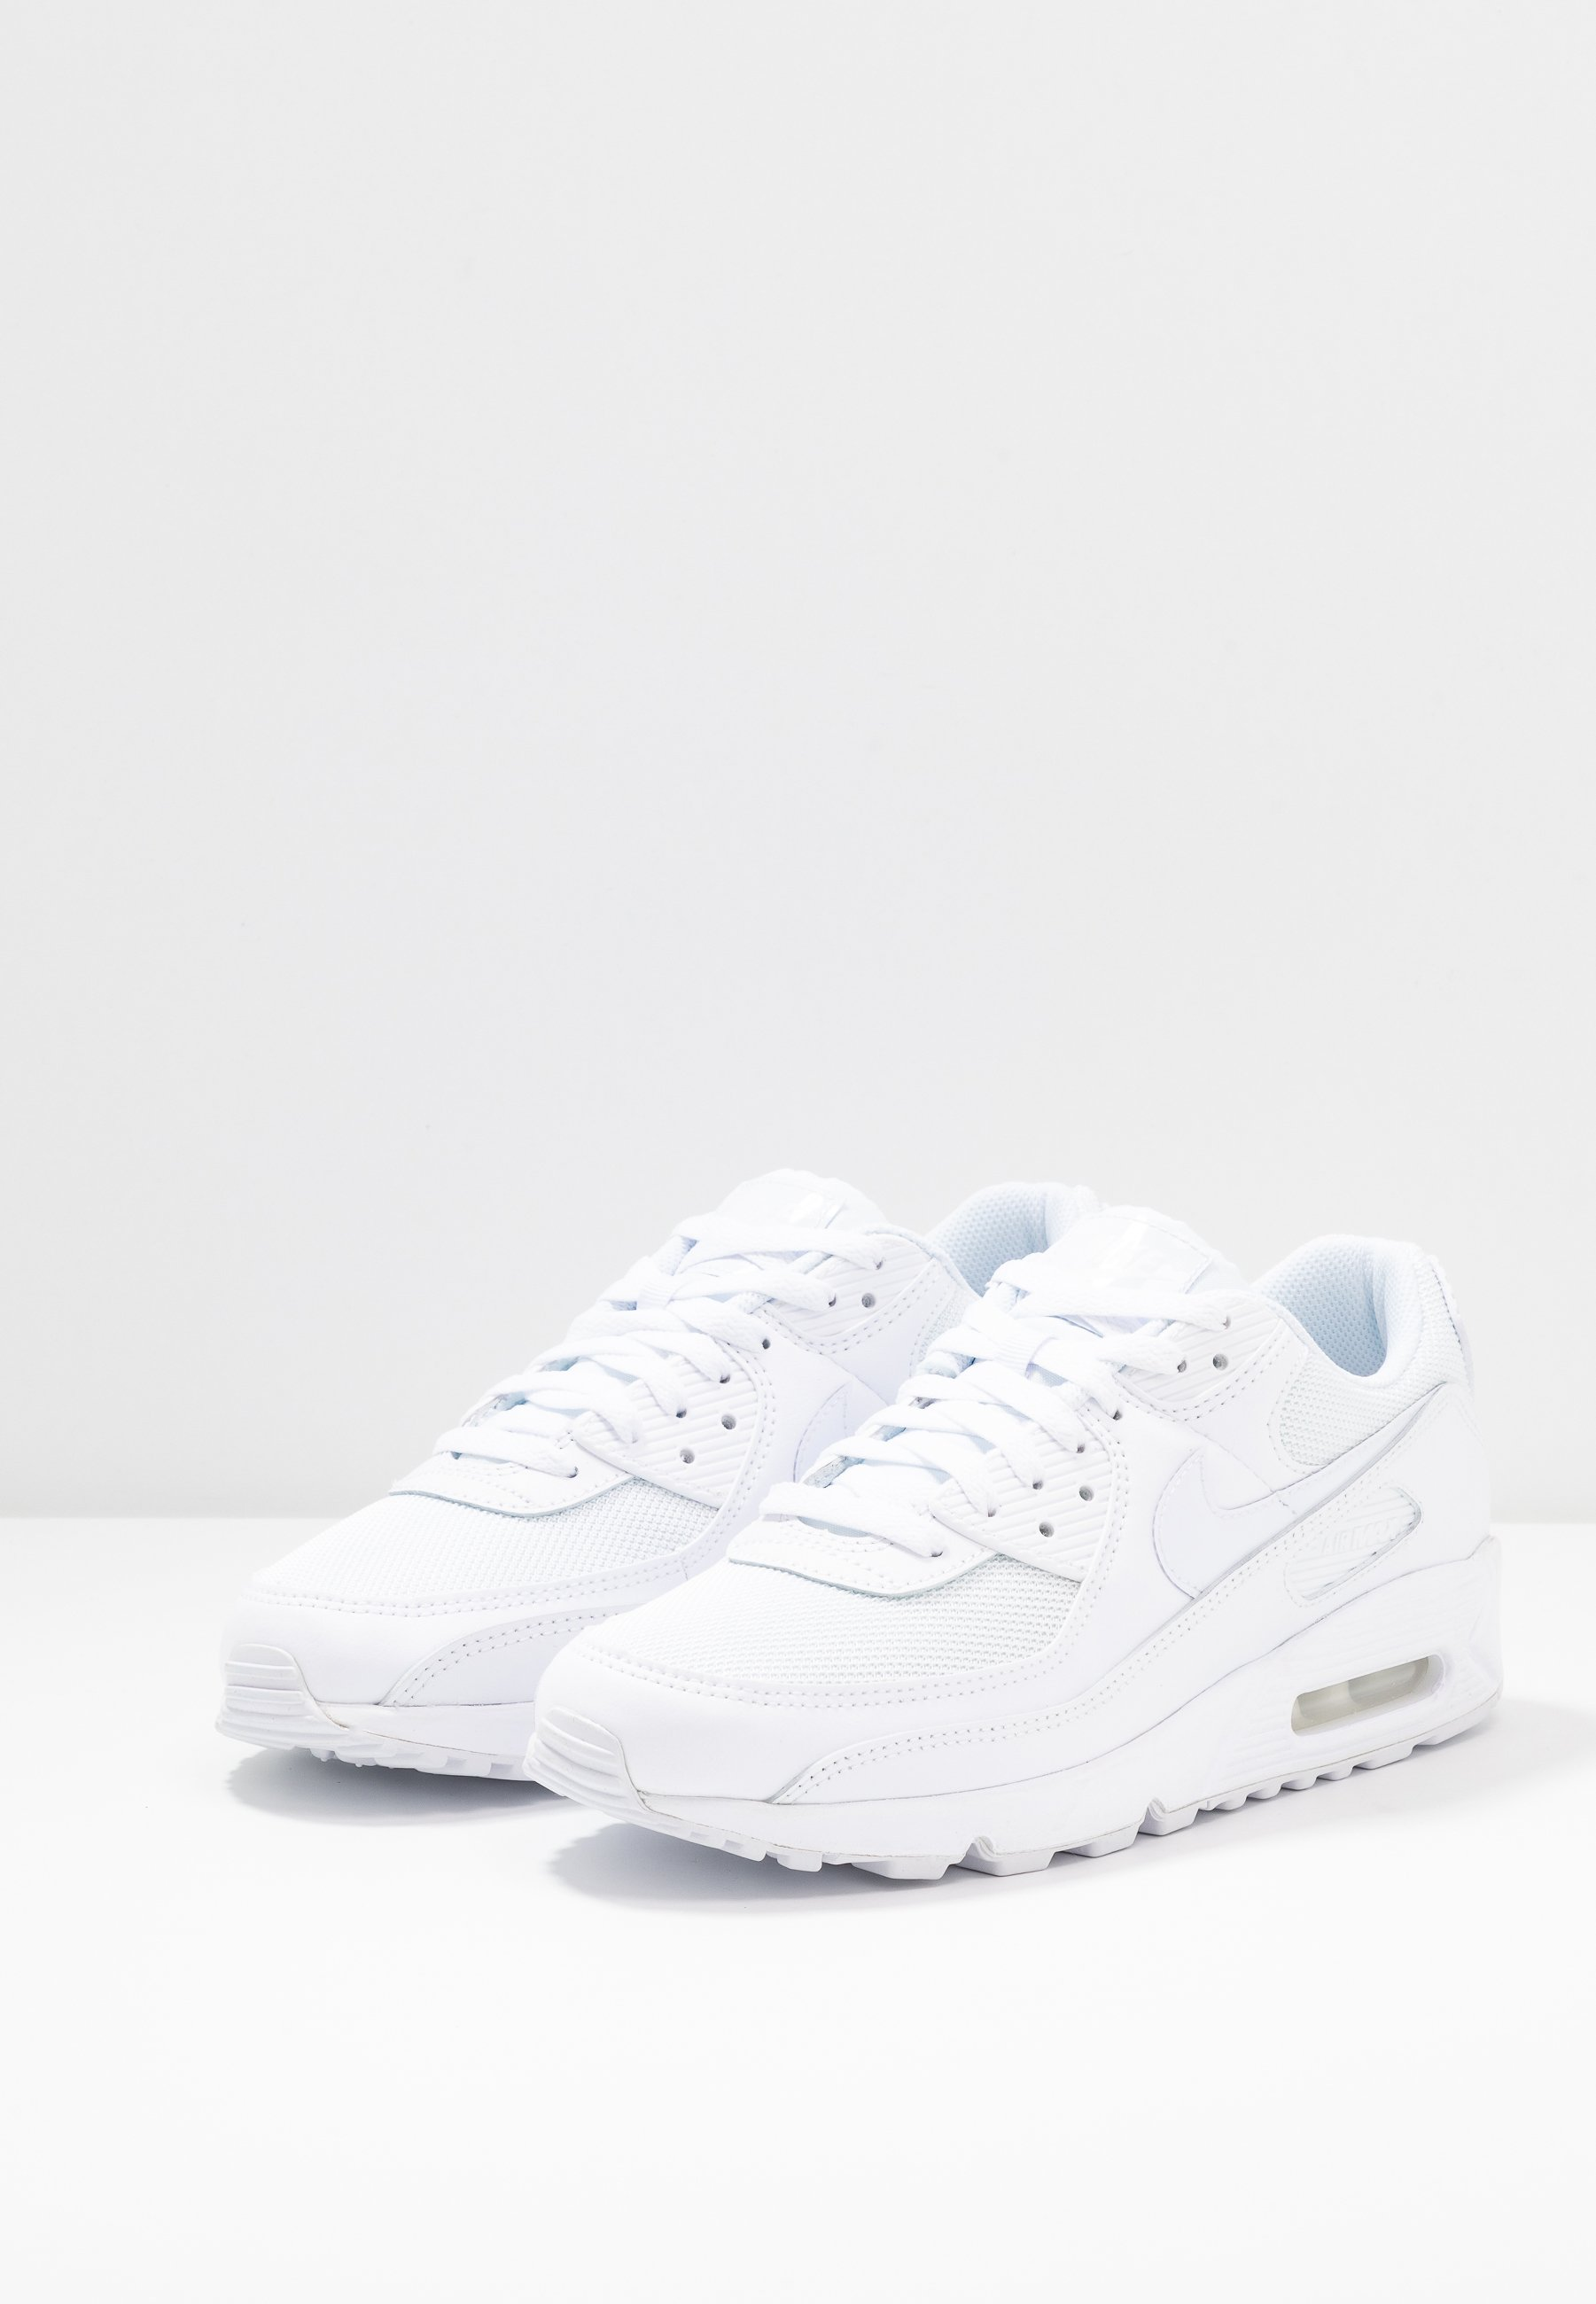 Super High-Quality Cheap Women's Shoes Nike Sportswear AIR MAX 90 Trainers white 6jaQKHnAv Wppt0Og6l